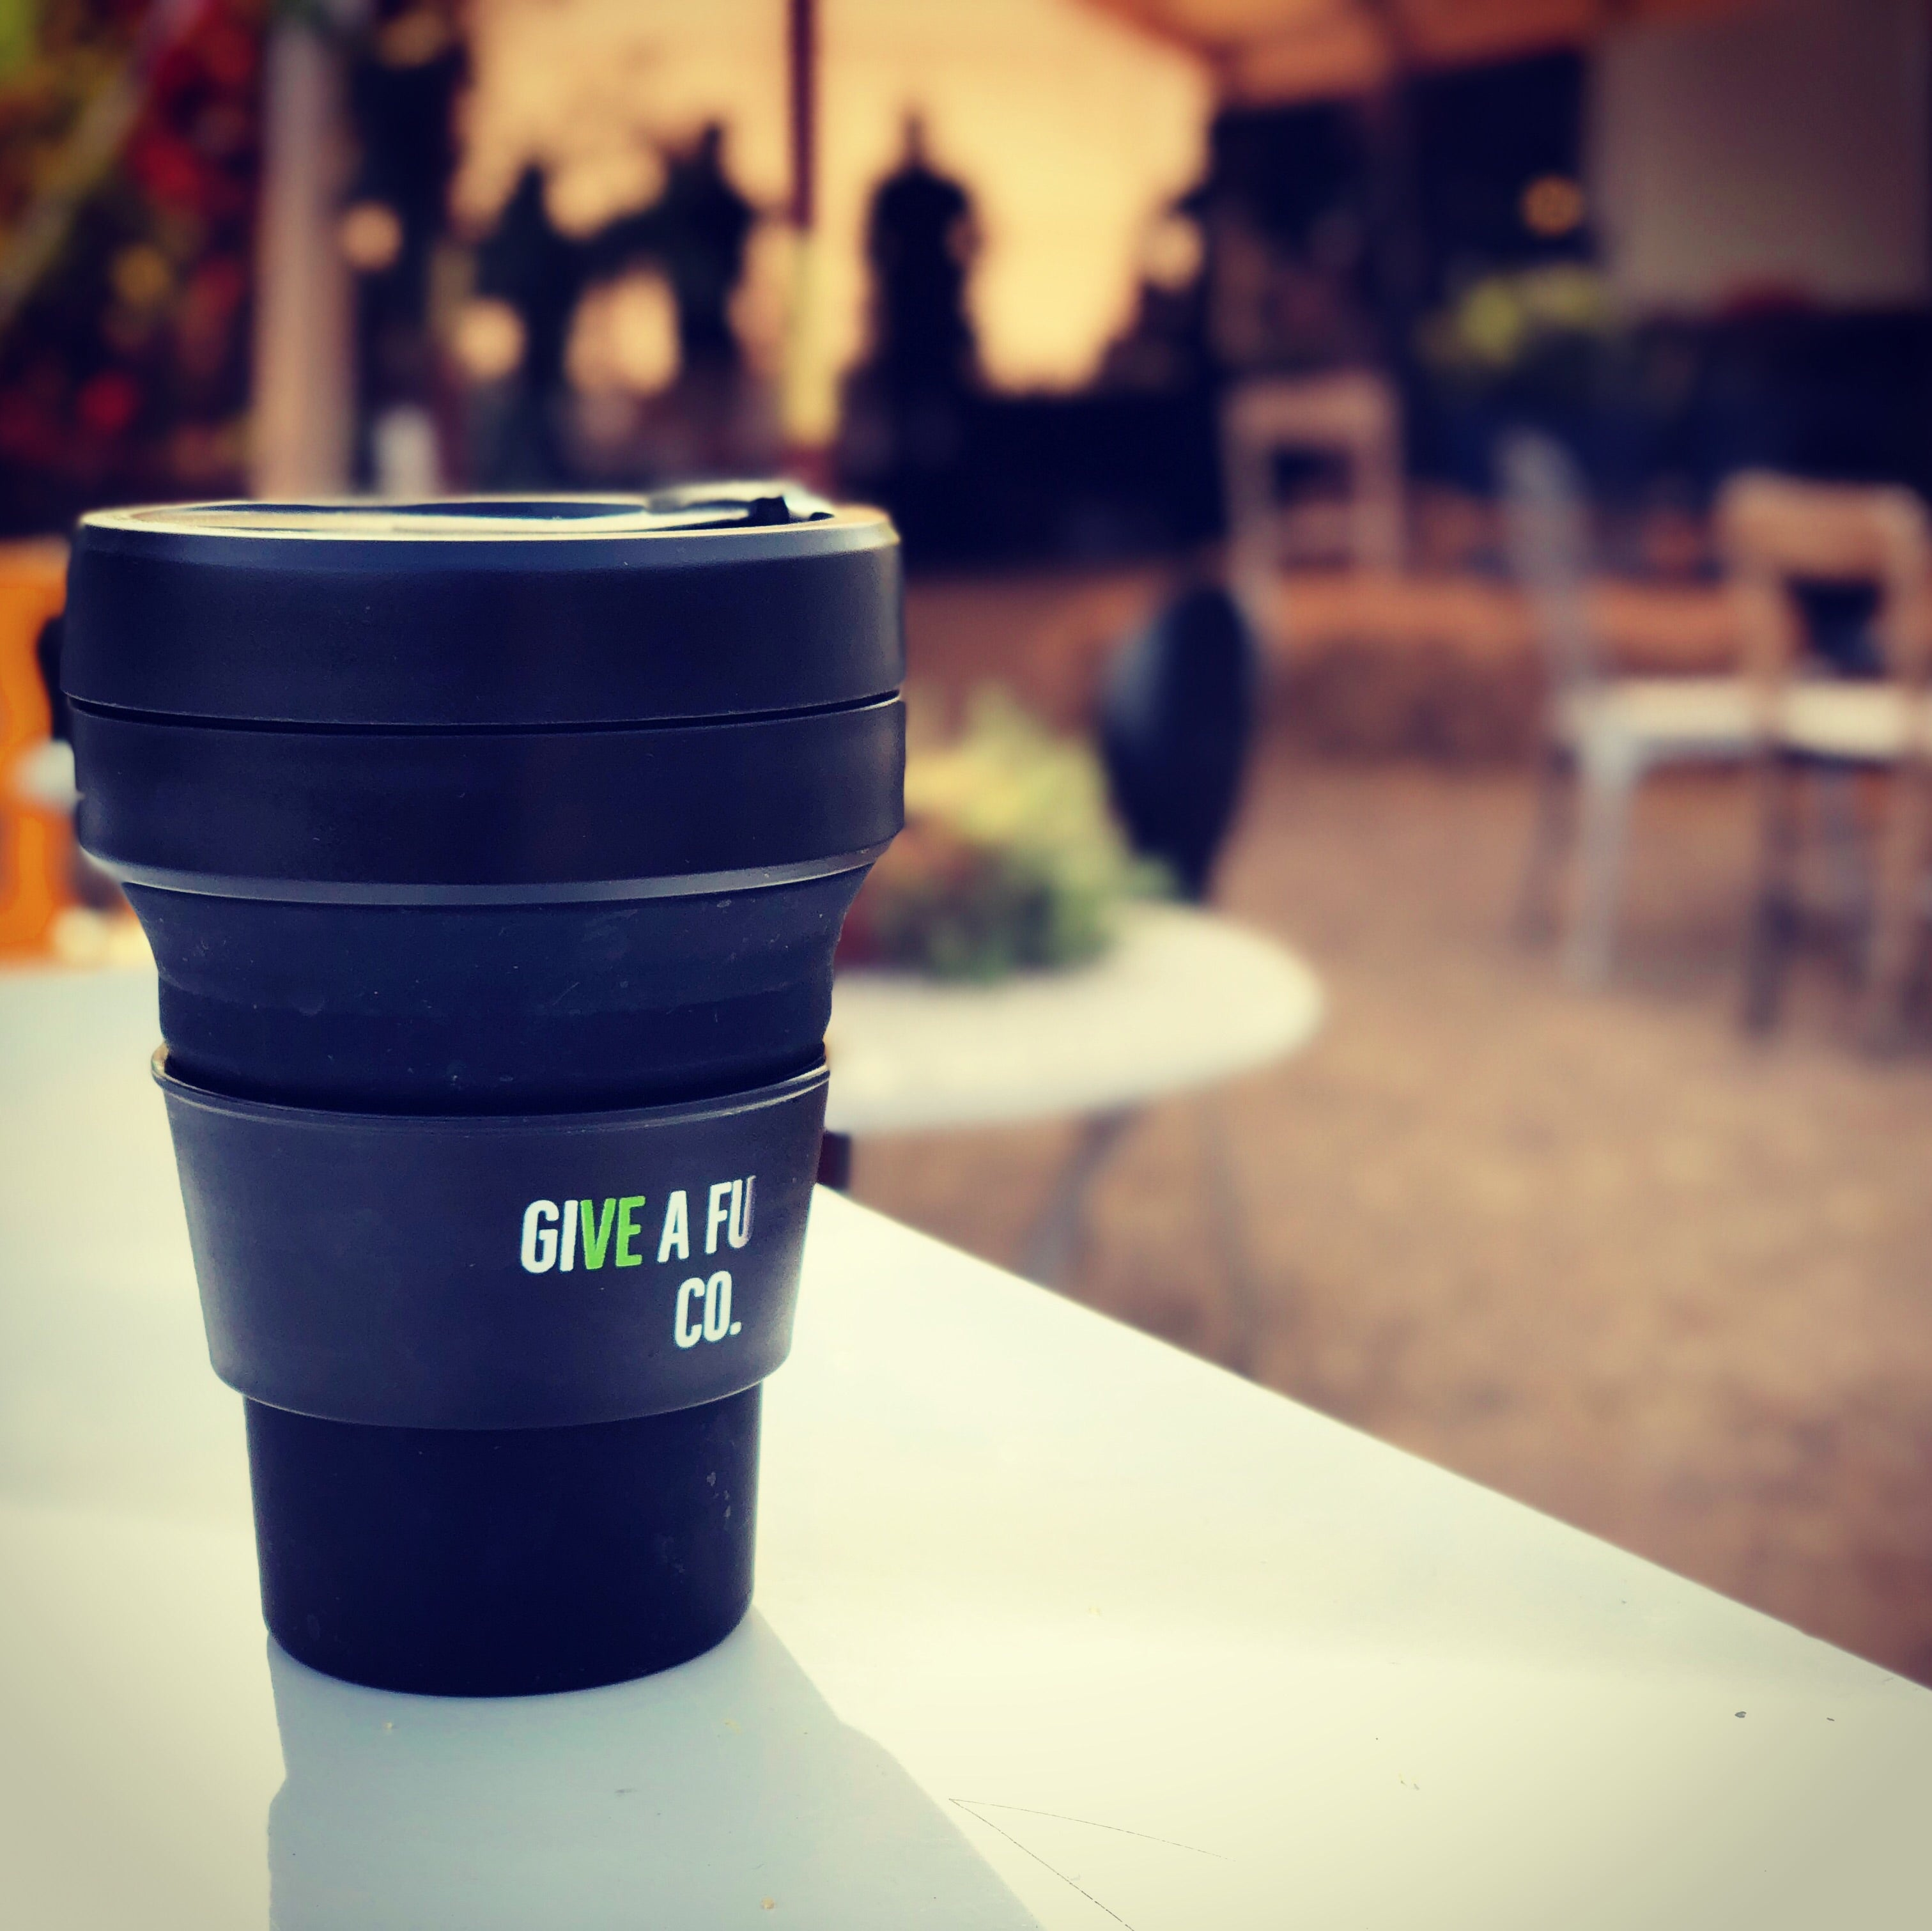 GIVE A FU CO. Coffee Cup - Reusable and Collapsable